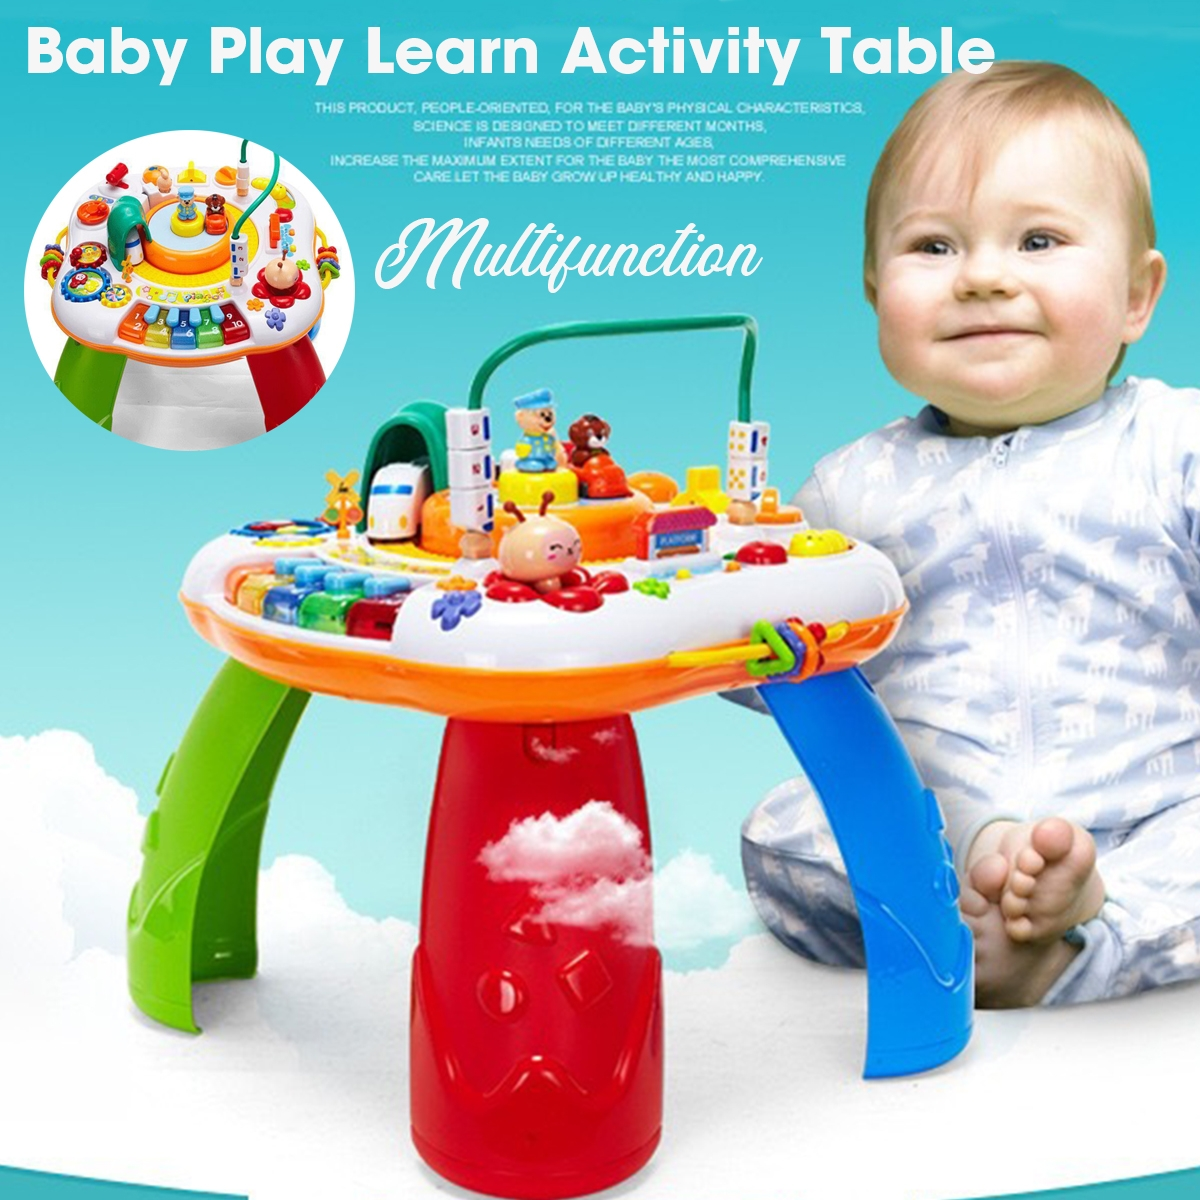 Multi-function Mini Baby Playing Learn Activity Game Table Toys for Kids Gift